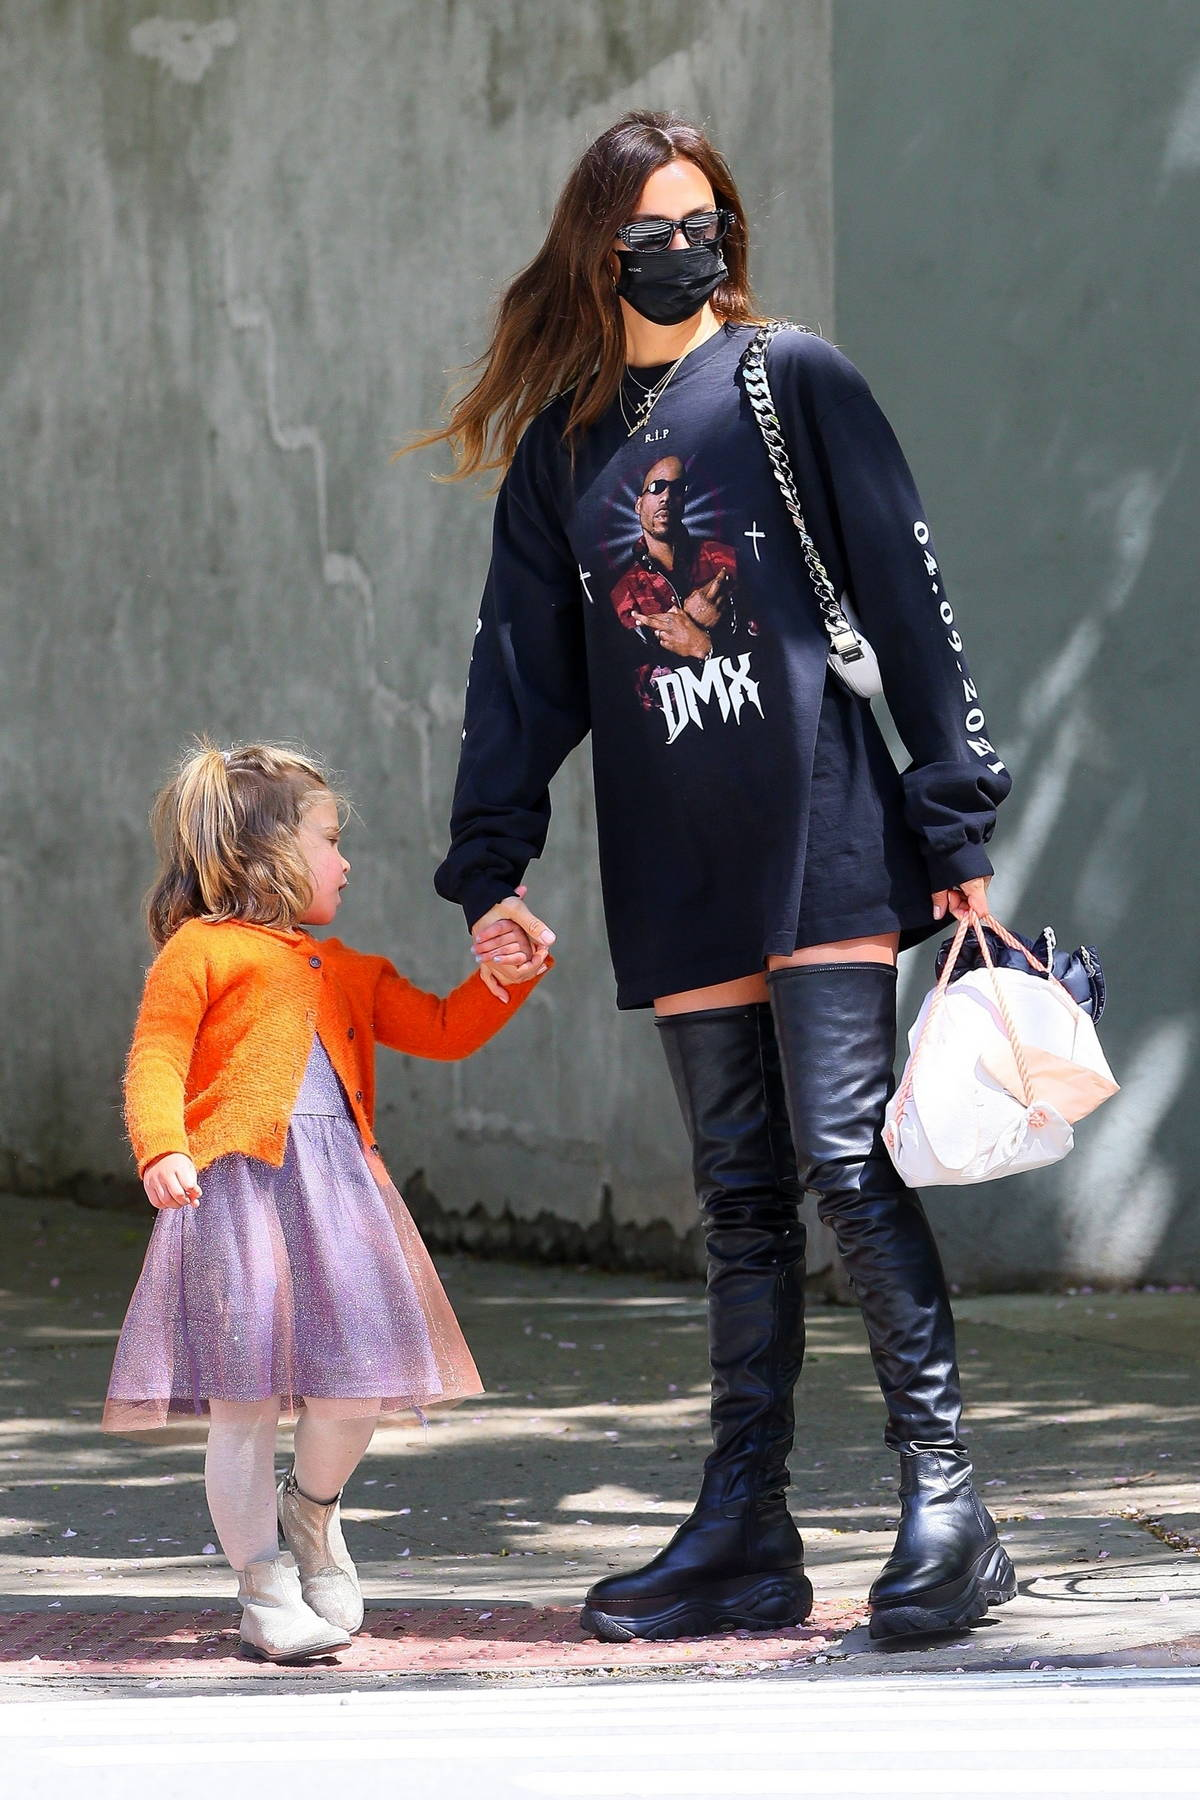 irina shayk dons an oversized 'dmx' sweatshirt and a pair of knee-high  boots while stepping out with her daughter in new york city-260421_12